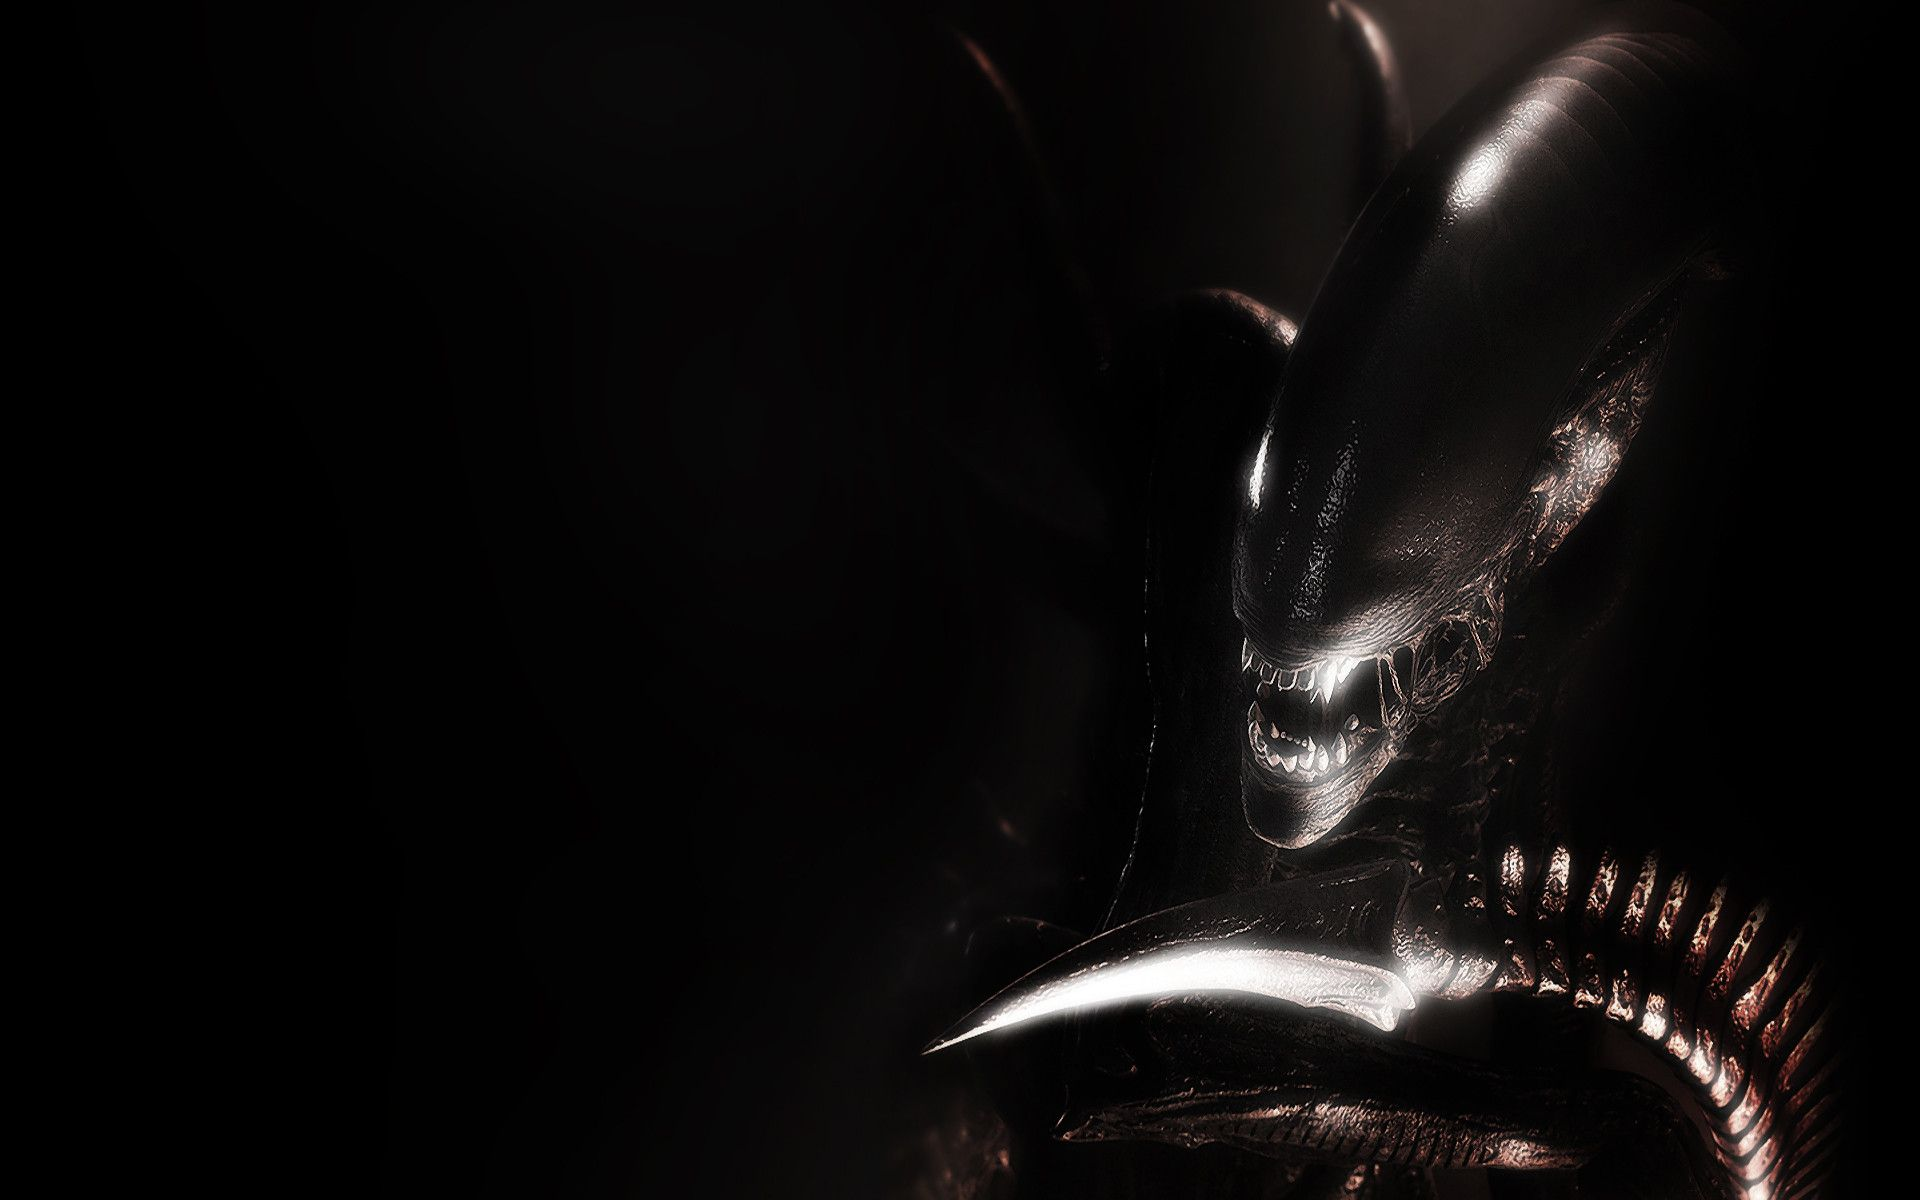 Alien Full HD Wallpaper and Background Image | 1920x1200 | ID:865087 for Ufo Black Background  56mzq